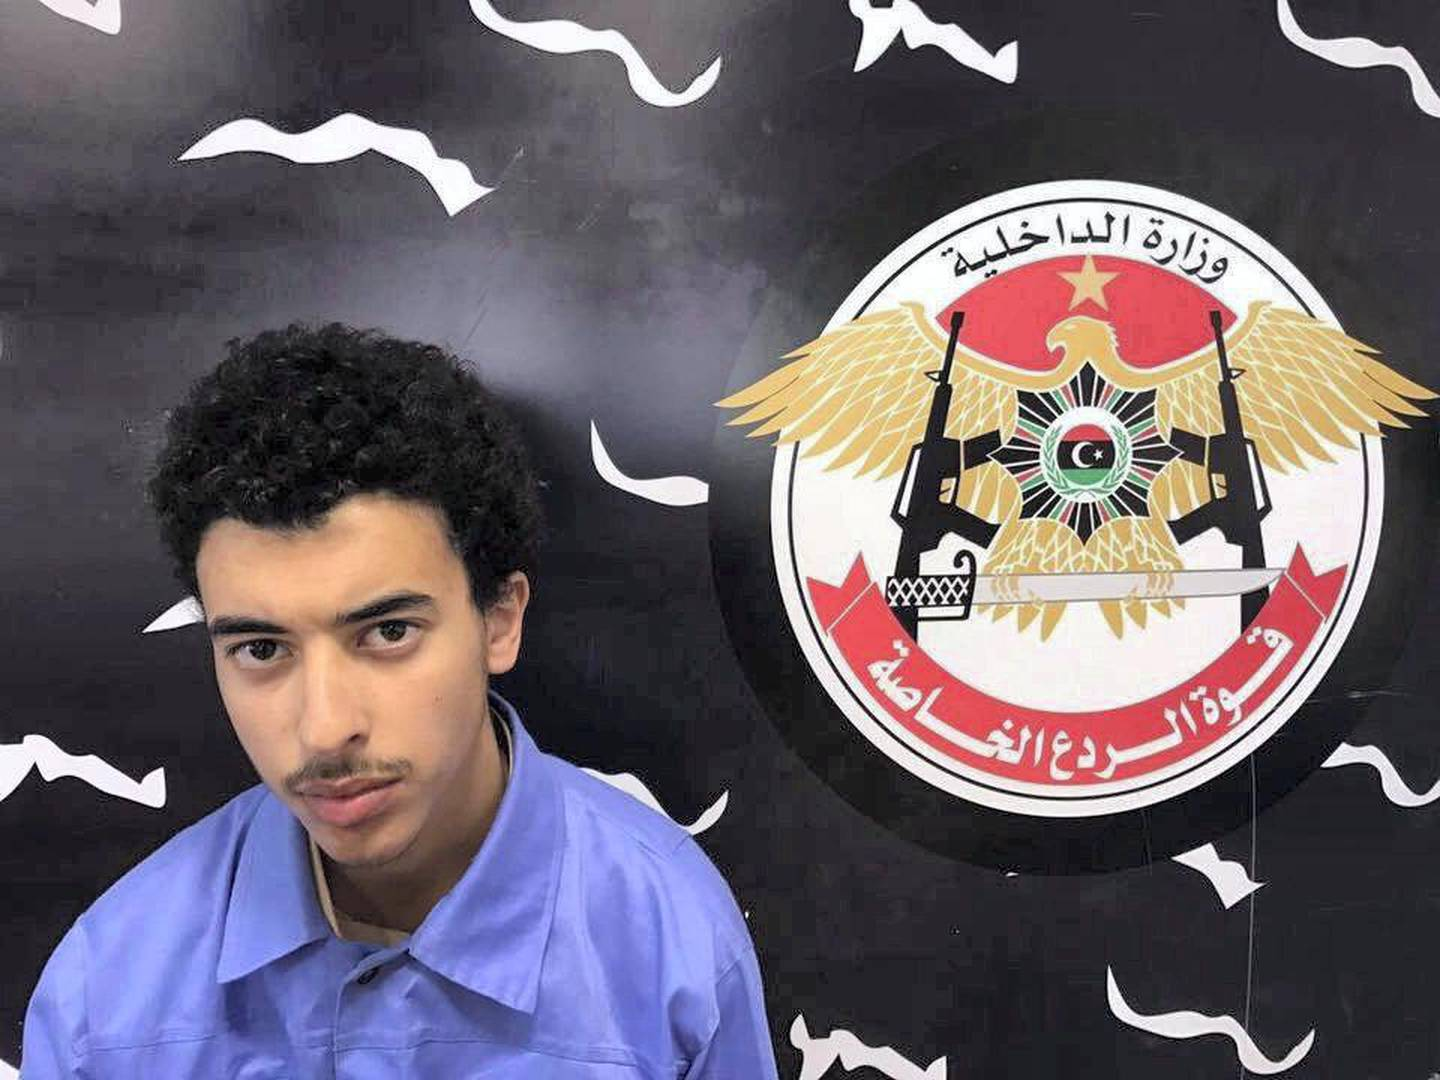 Hashem Abedi, the brother of a suicide bomber who attacked a concert in Manchester in 2017, is seen after being arrested, in this undated picture released by Libya's Ministry of Interior's Special Deterrence Forces and obtained by Reuters on July 18, 2019. Libya's Ministry of Interior's Special Deterrence Forces/Handout via REUTERS ATTENTION EDITORS - THIS PICTURE WAS PROVIDED BY A THIRD PARTY. NO RESALES . NO ARCHIVES.